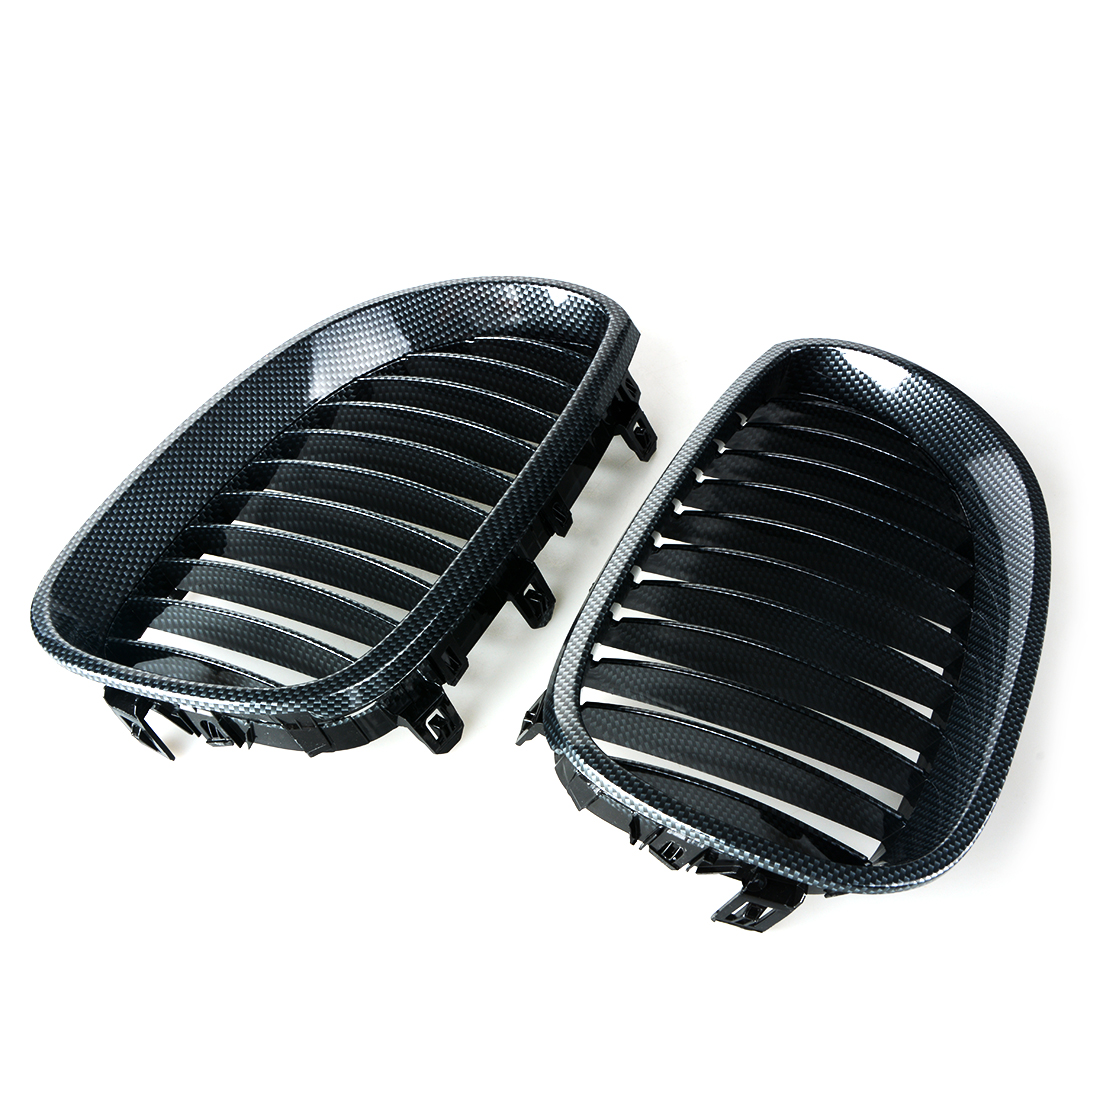 1 Pair Auto Replacement Parts Racing Grills Car Front Kidney Grille Carbon Fiber Grilles For BMW 5 Series E60 2003-2009